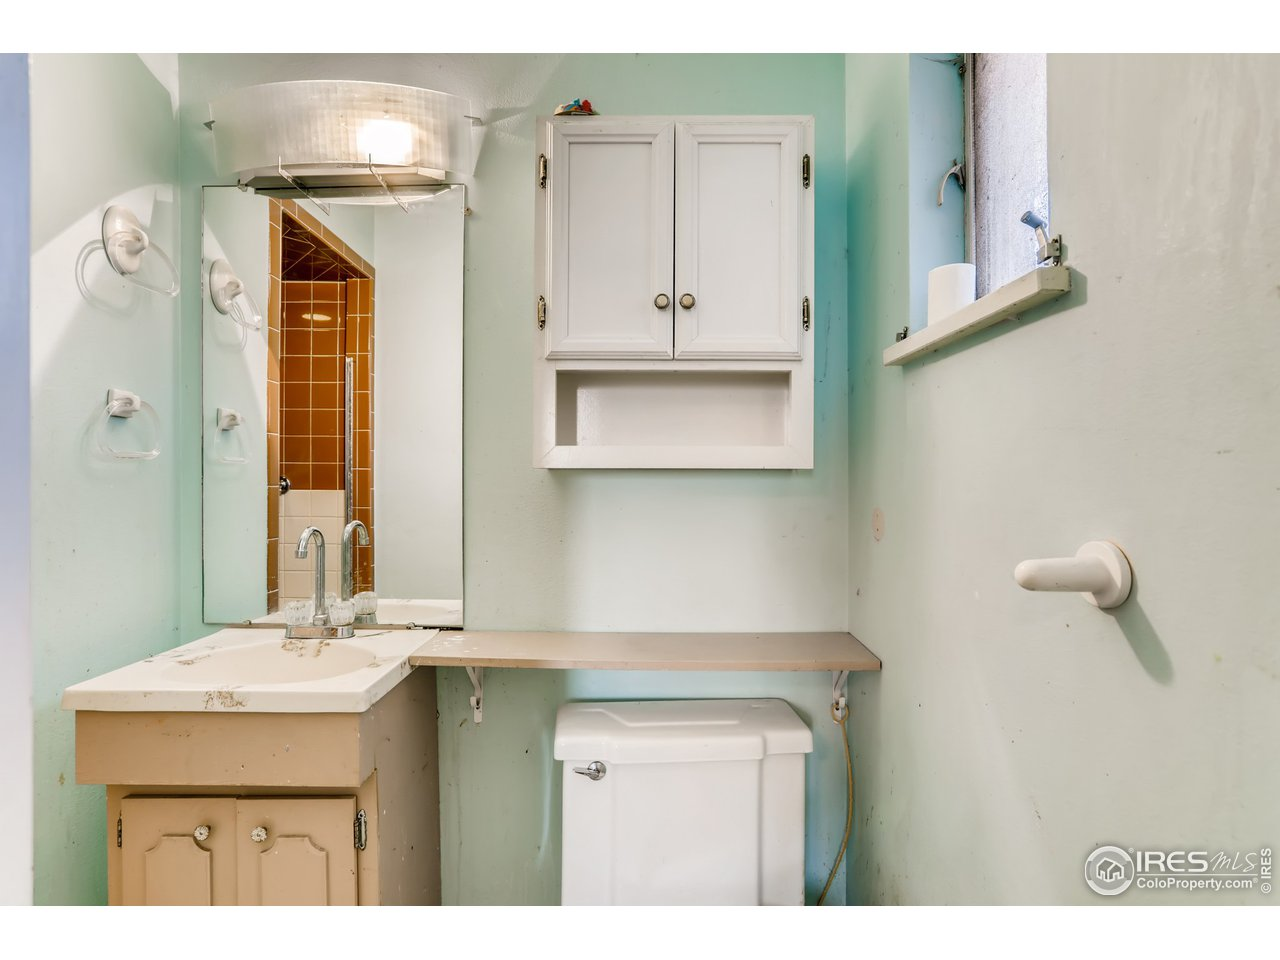 3/4 attached primary bath